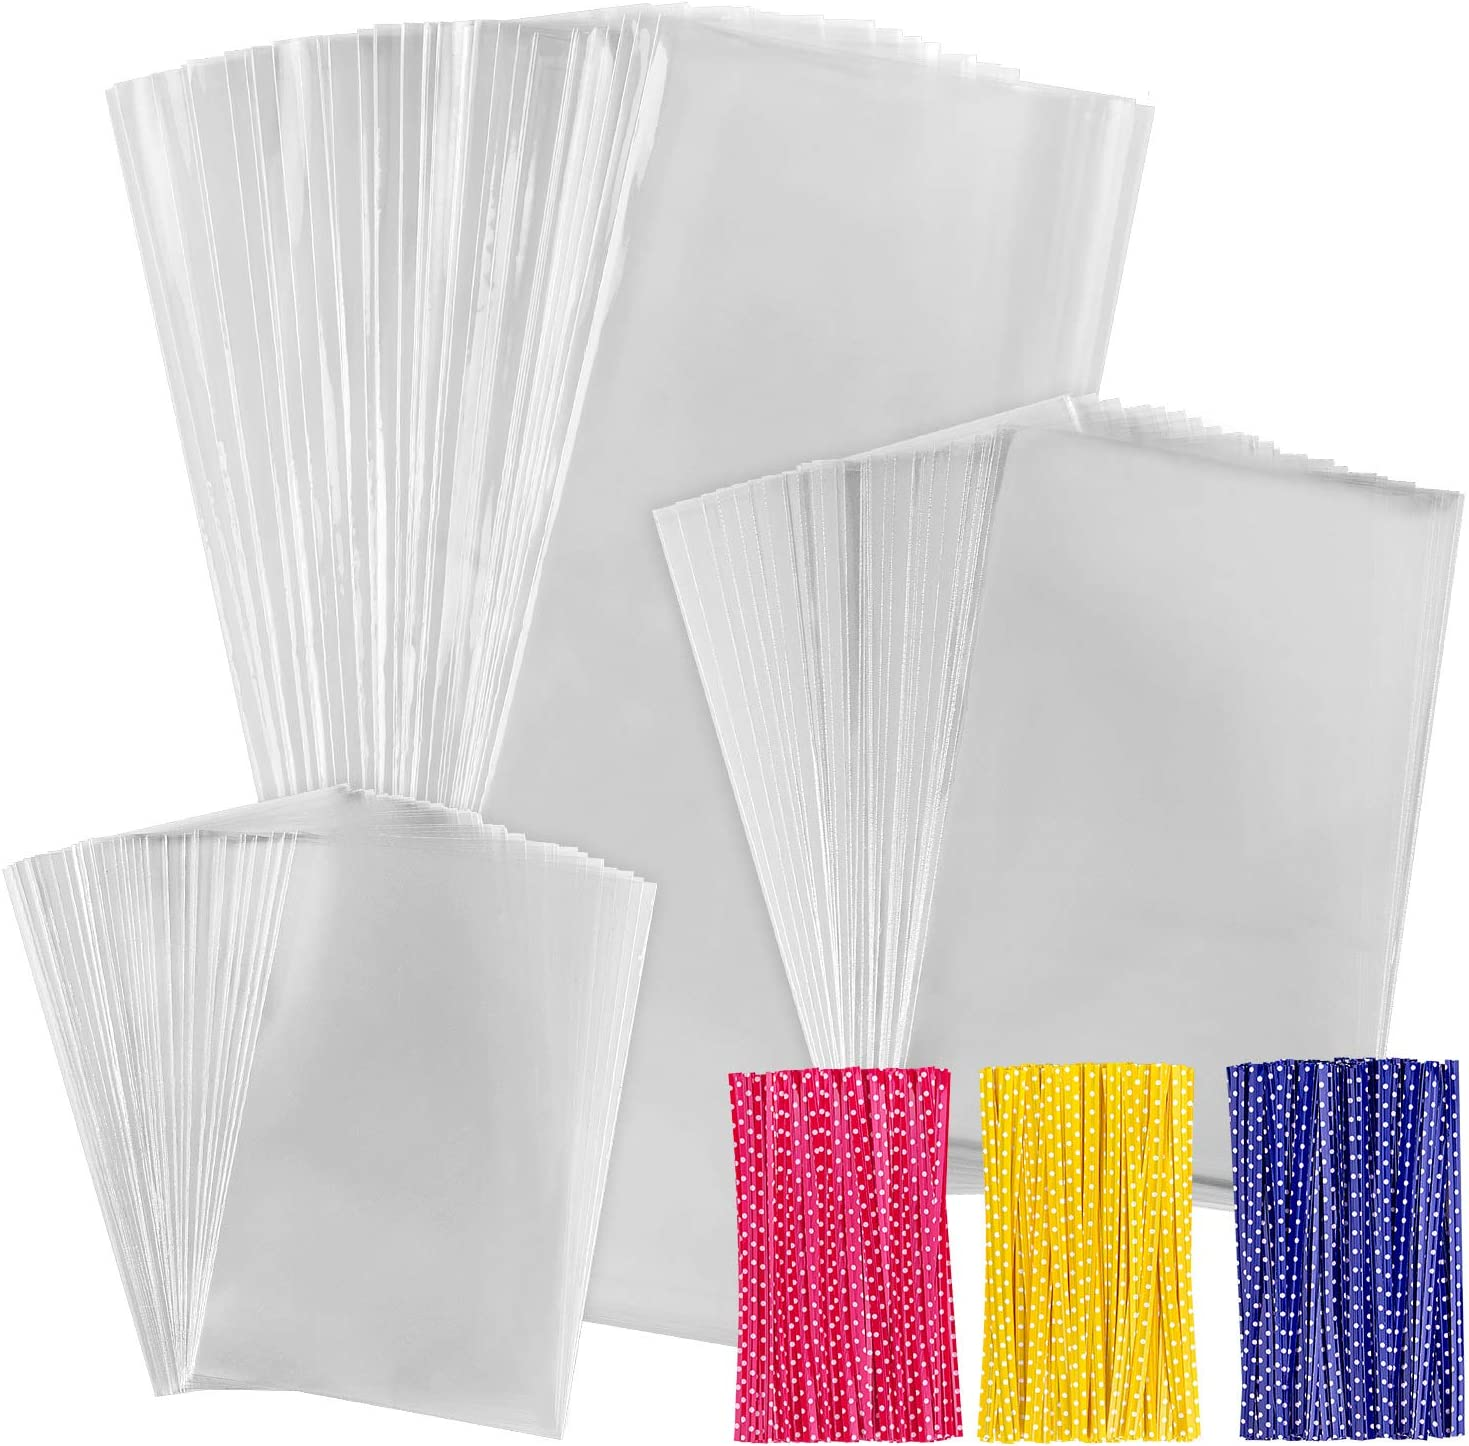 300 PCS Clear Cellophane Treat Bags with 300 PCS 4